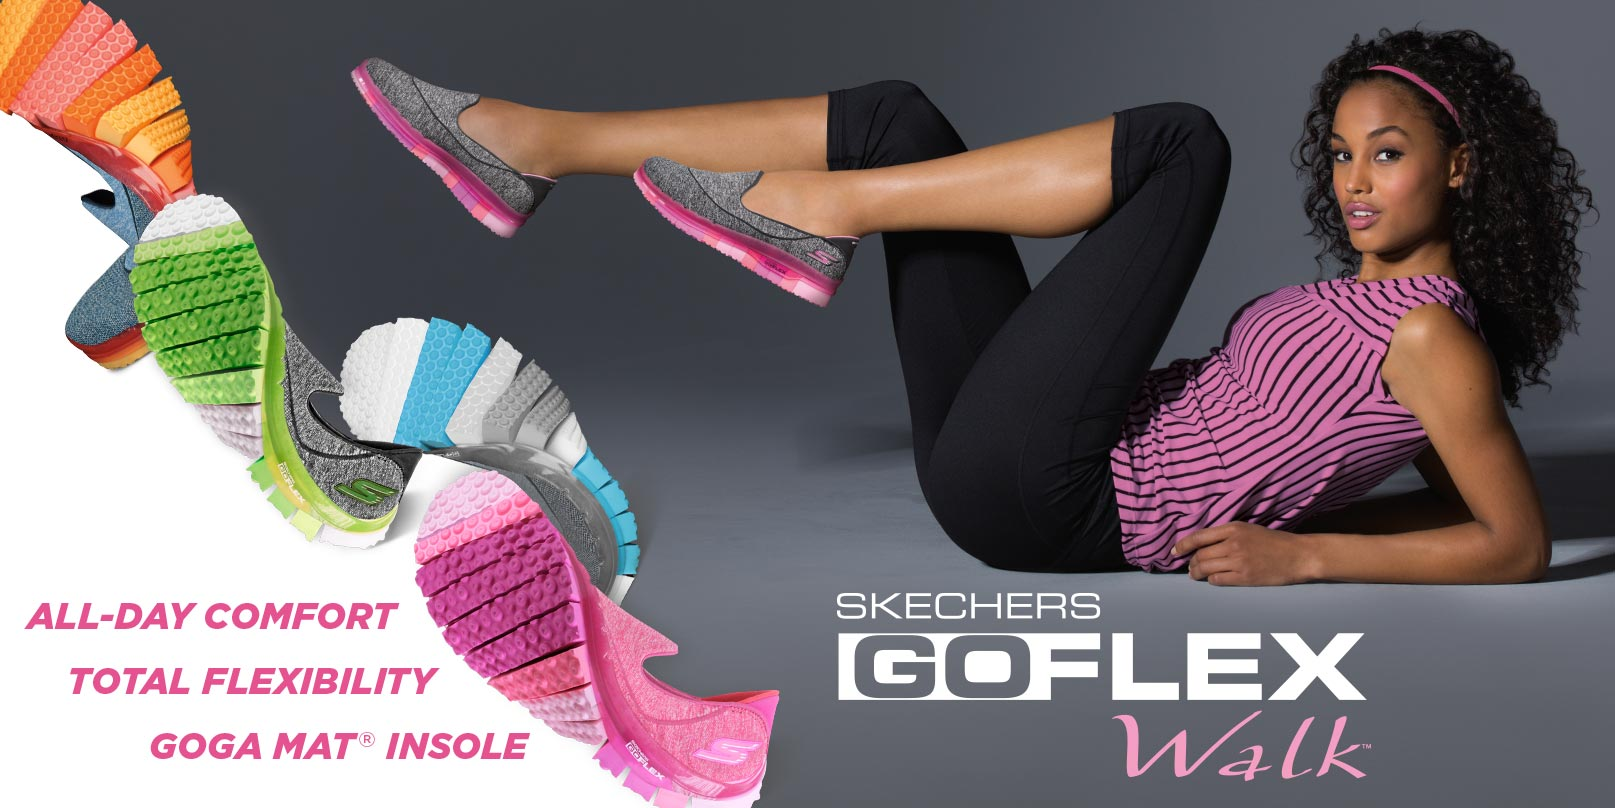 skechers home page top banner view all styles